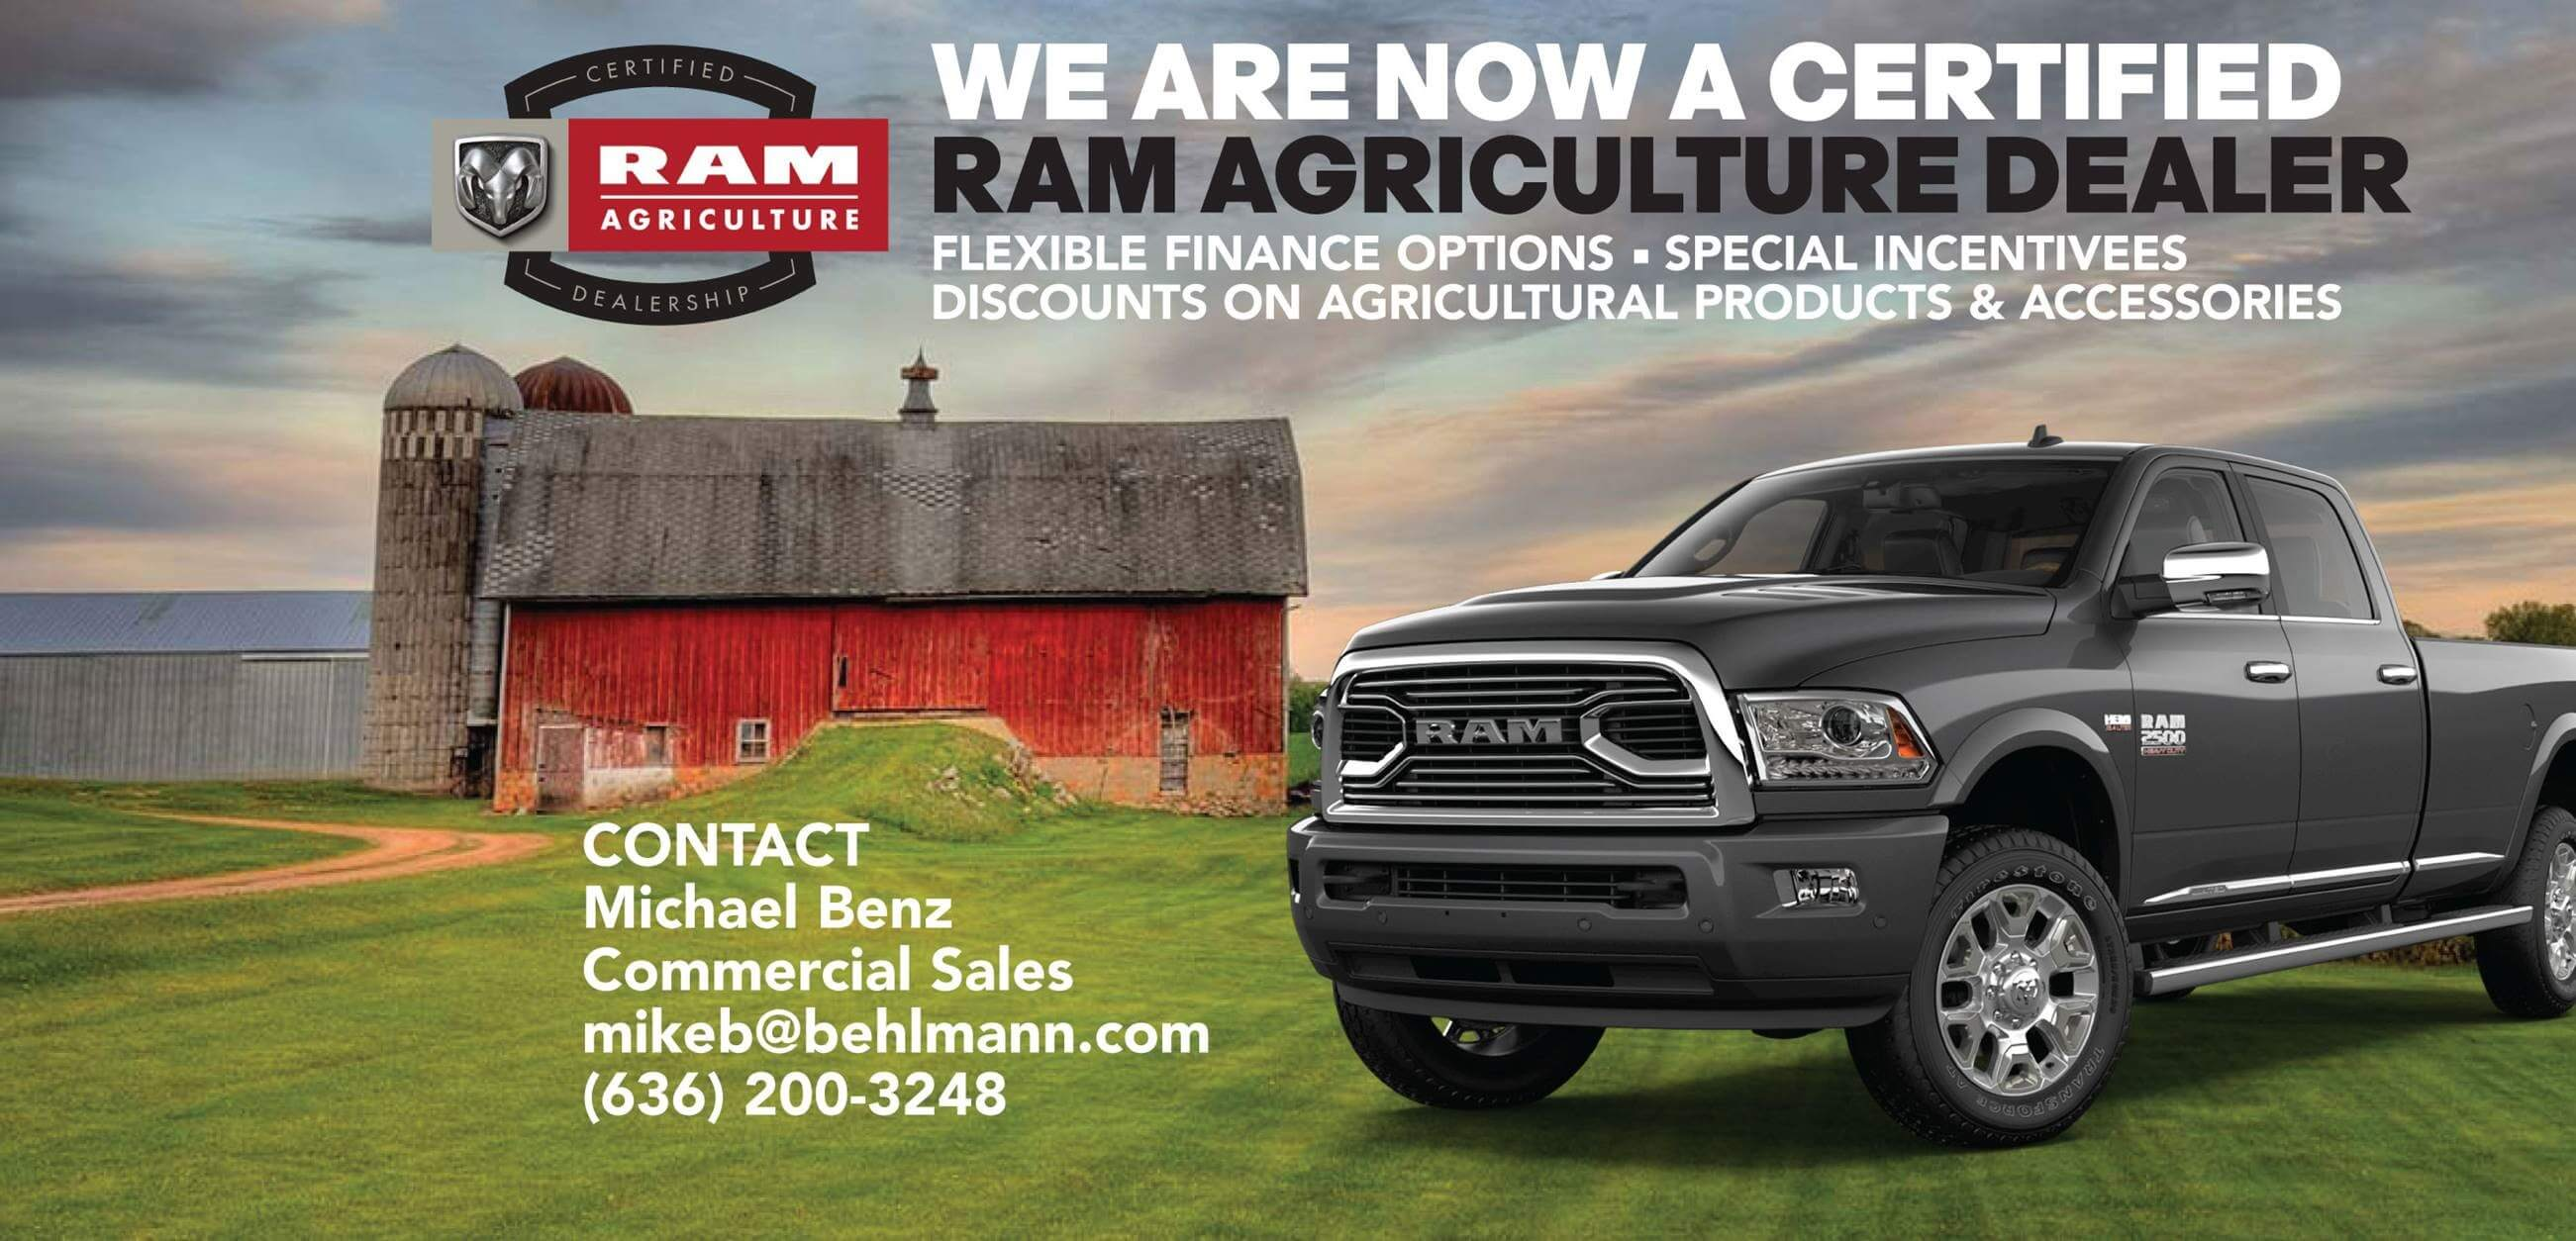 Behlmann CDJR is now a Certified Ram Agriculture Dealer.